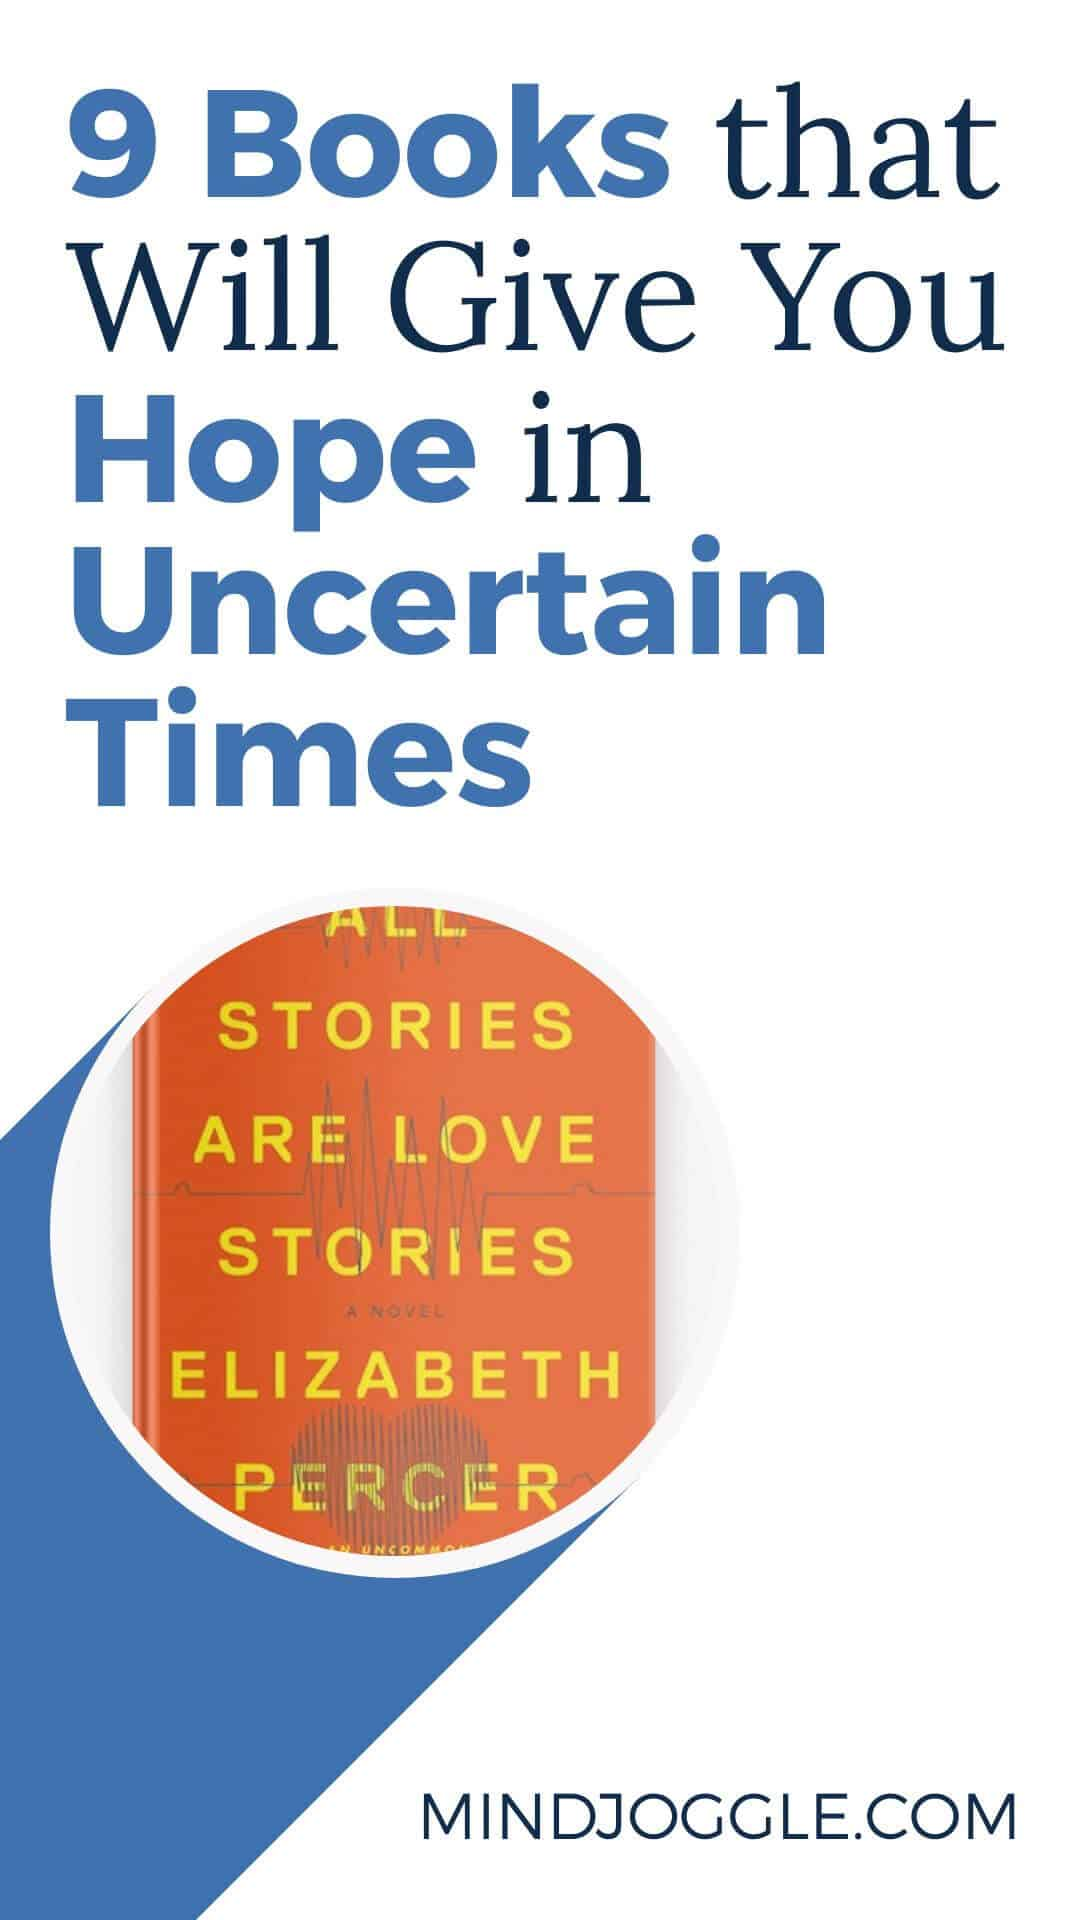 9 Books that Will Give You Hope in Uncertain Times